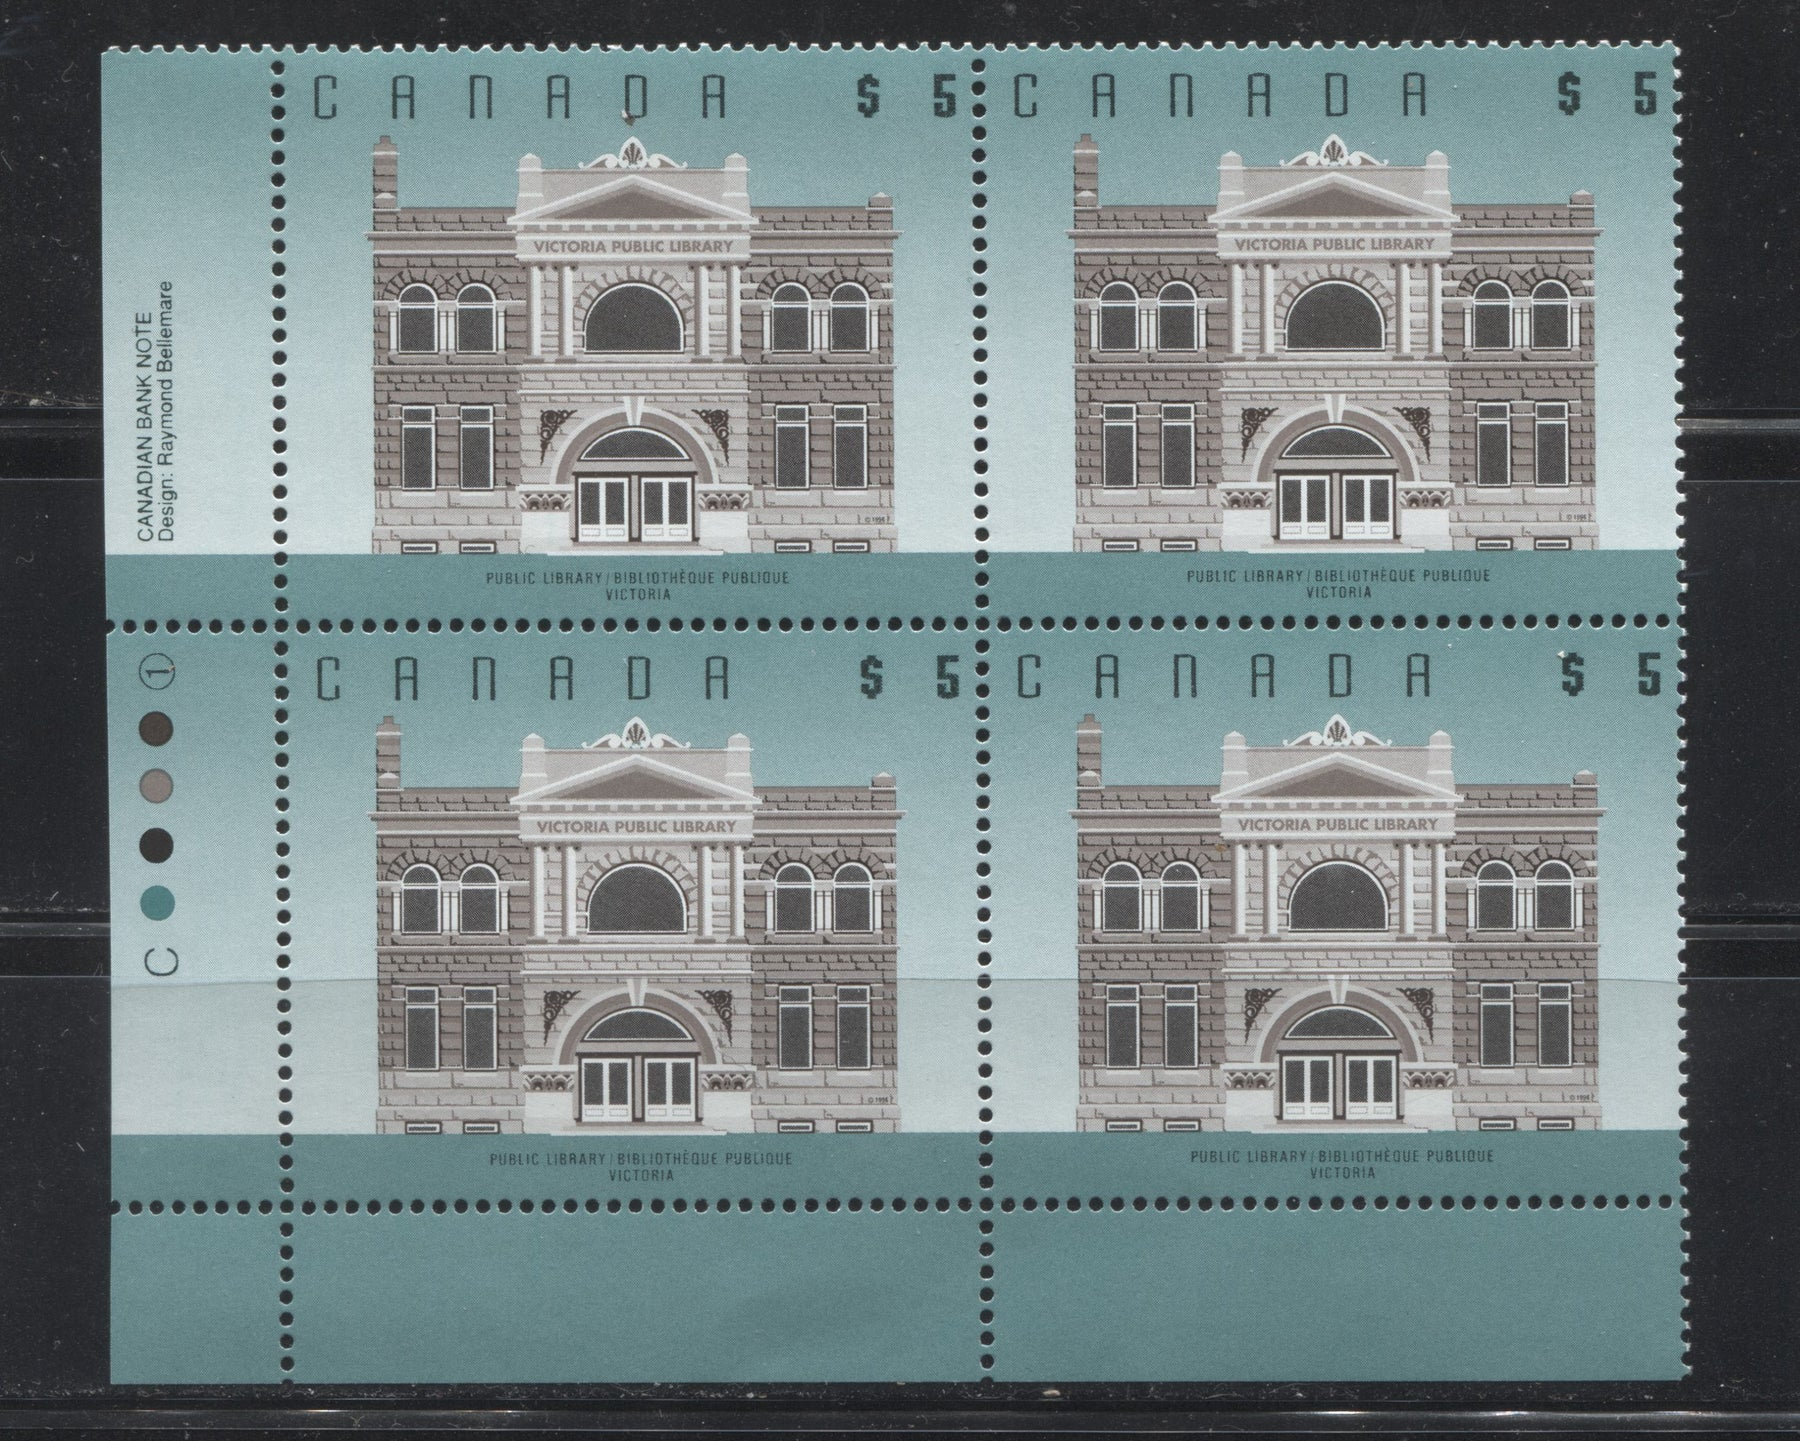 Canada #1378 $5 Victoria Public Library, 1991-1998 Fruit and Flag Issue, a VFNH LL Plate Block of the Type 1 CBN Printing